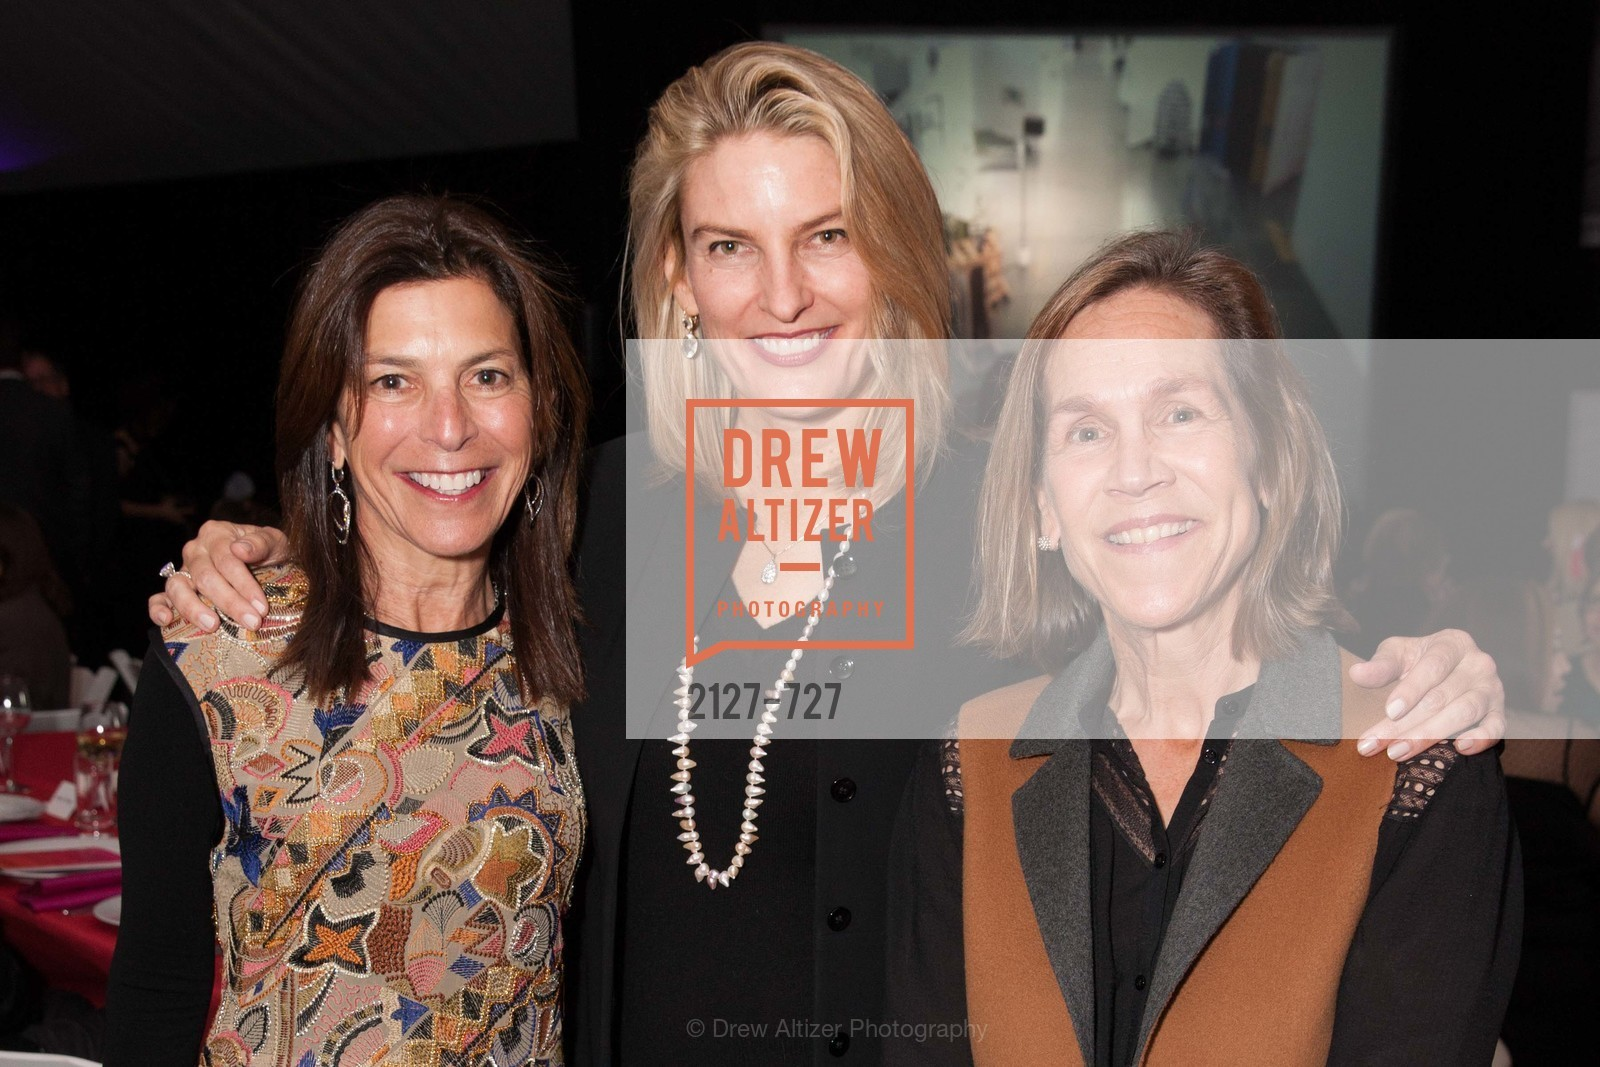 Susan Swig, Mindy Henderson, Robin Wright, SAN FRANCISCO ART INSTITUTE Gala Honoring Art Visionary and Advocate ROSELYNE CHROMAN SWIG, US, May 14th, 2015,Drew Altizer, Drew Altizer Photography, full-service agency, private events, San Francisco photographer, photographer california